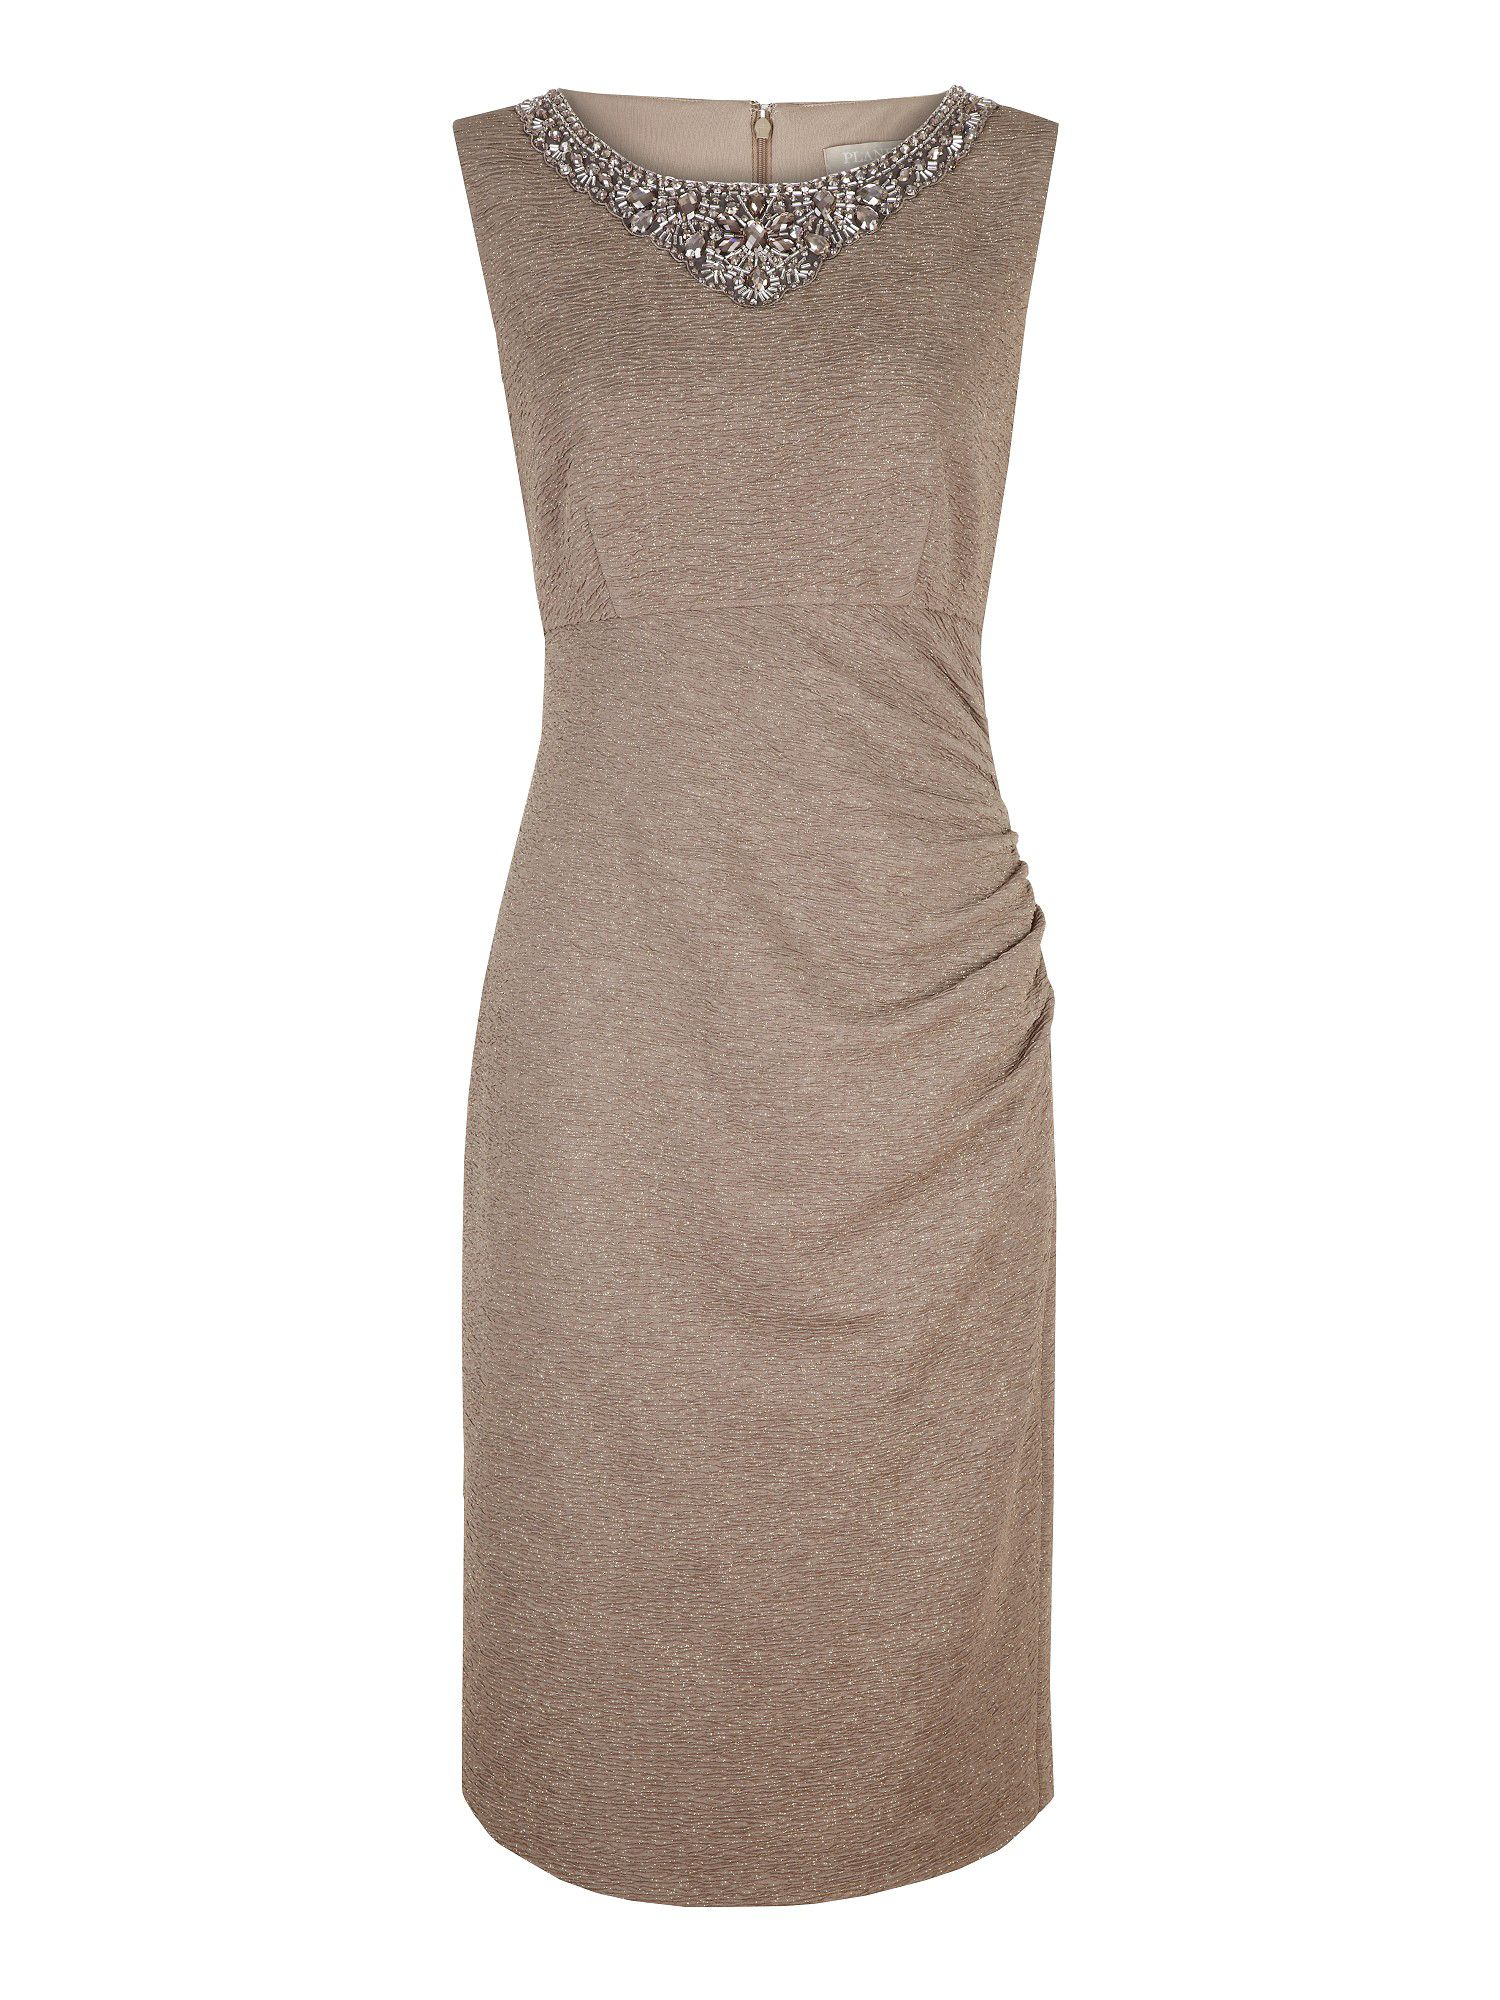 Embellished neckline dress